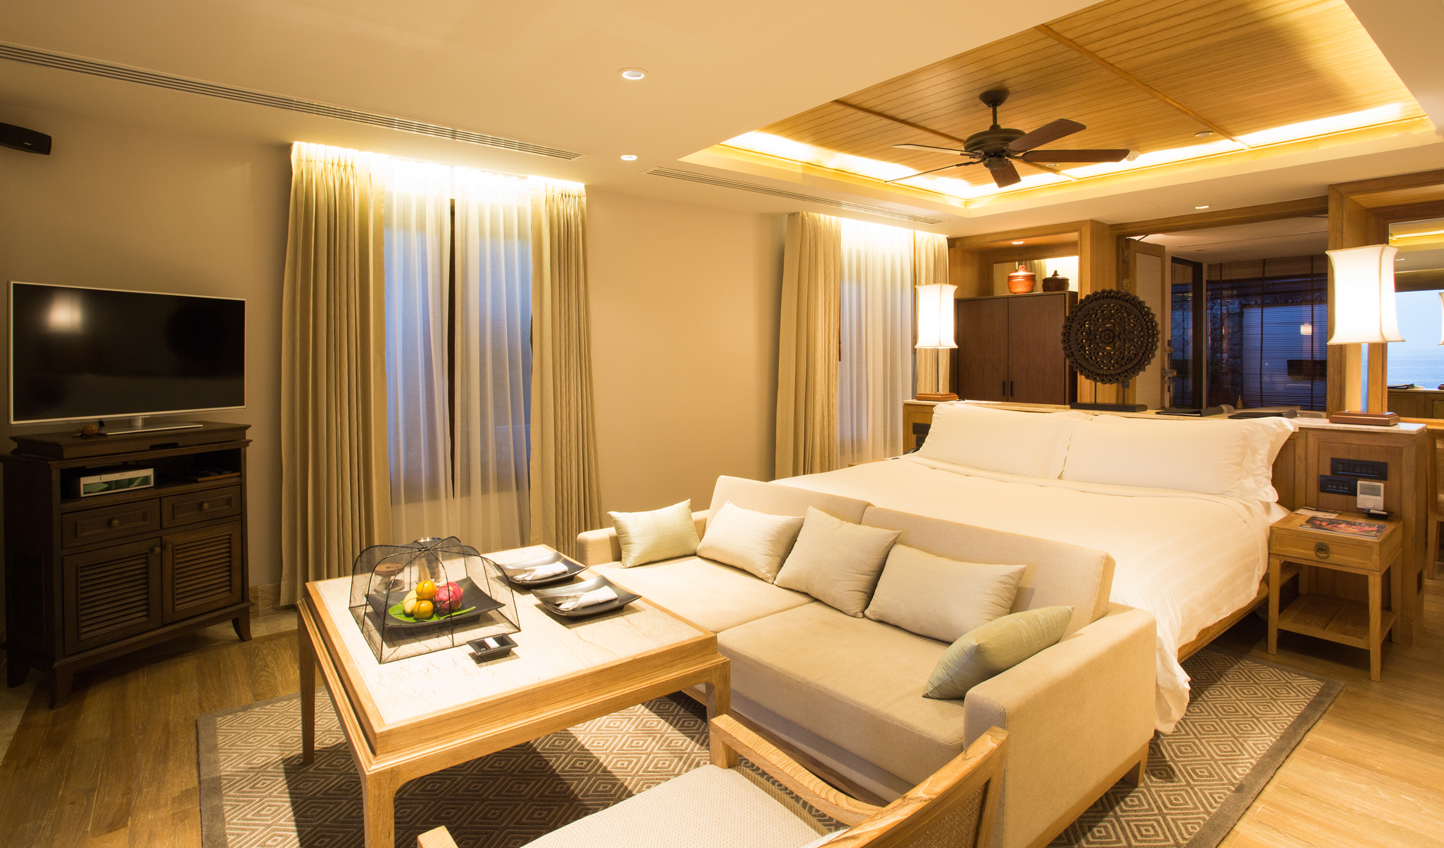 Contemporary luxury in your suite